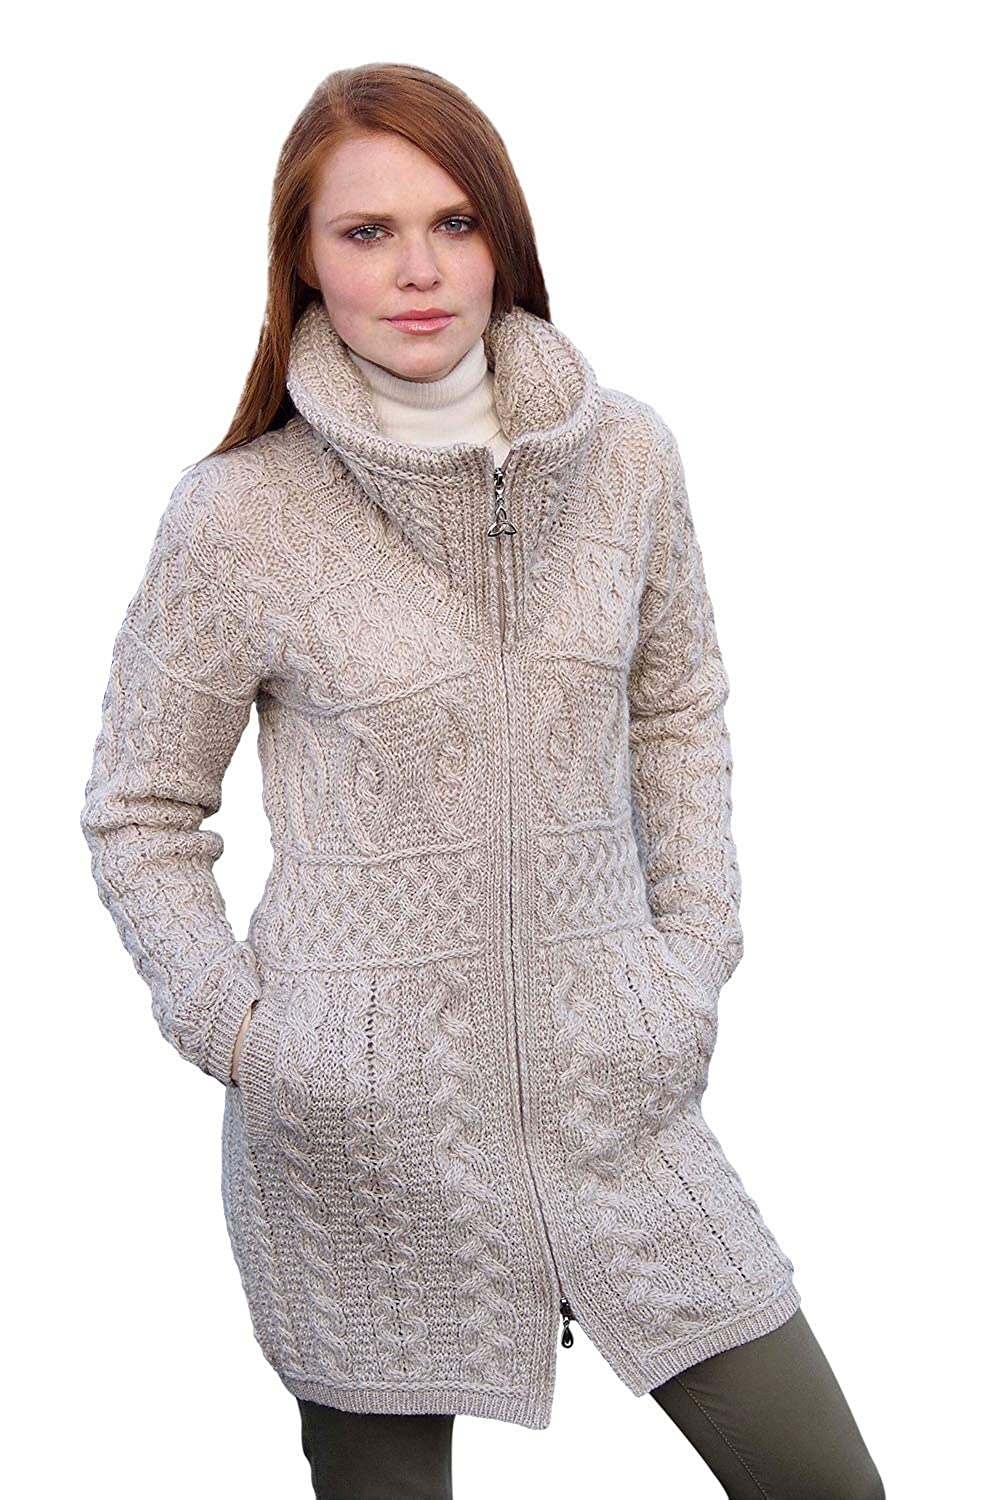 Parsnip West End 100% Irish Merino Wool Double Collar Aran Knit Coat Knitwear